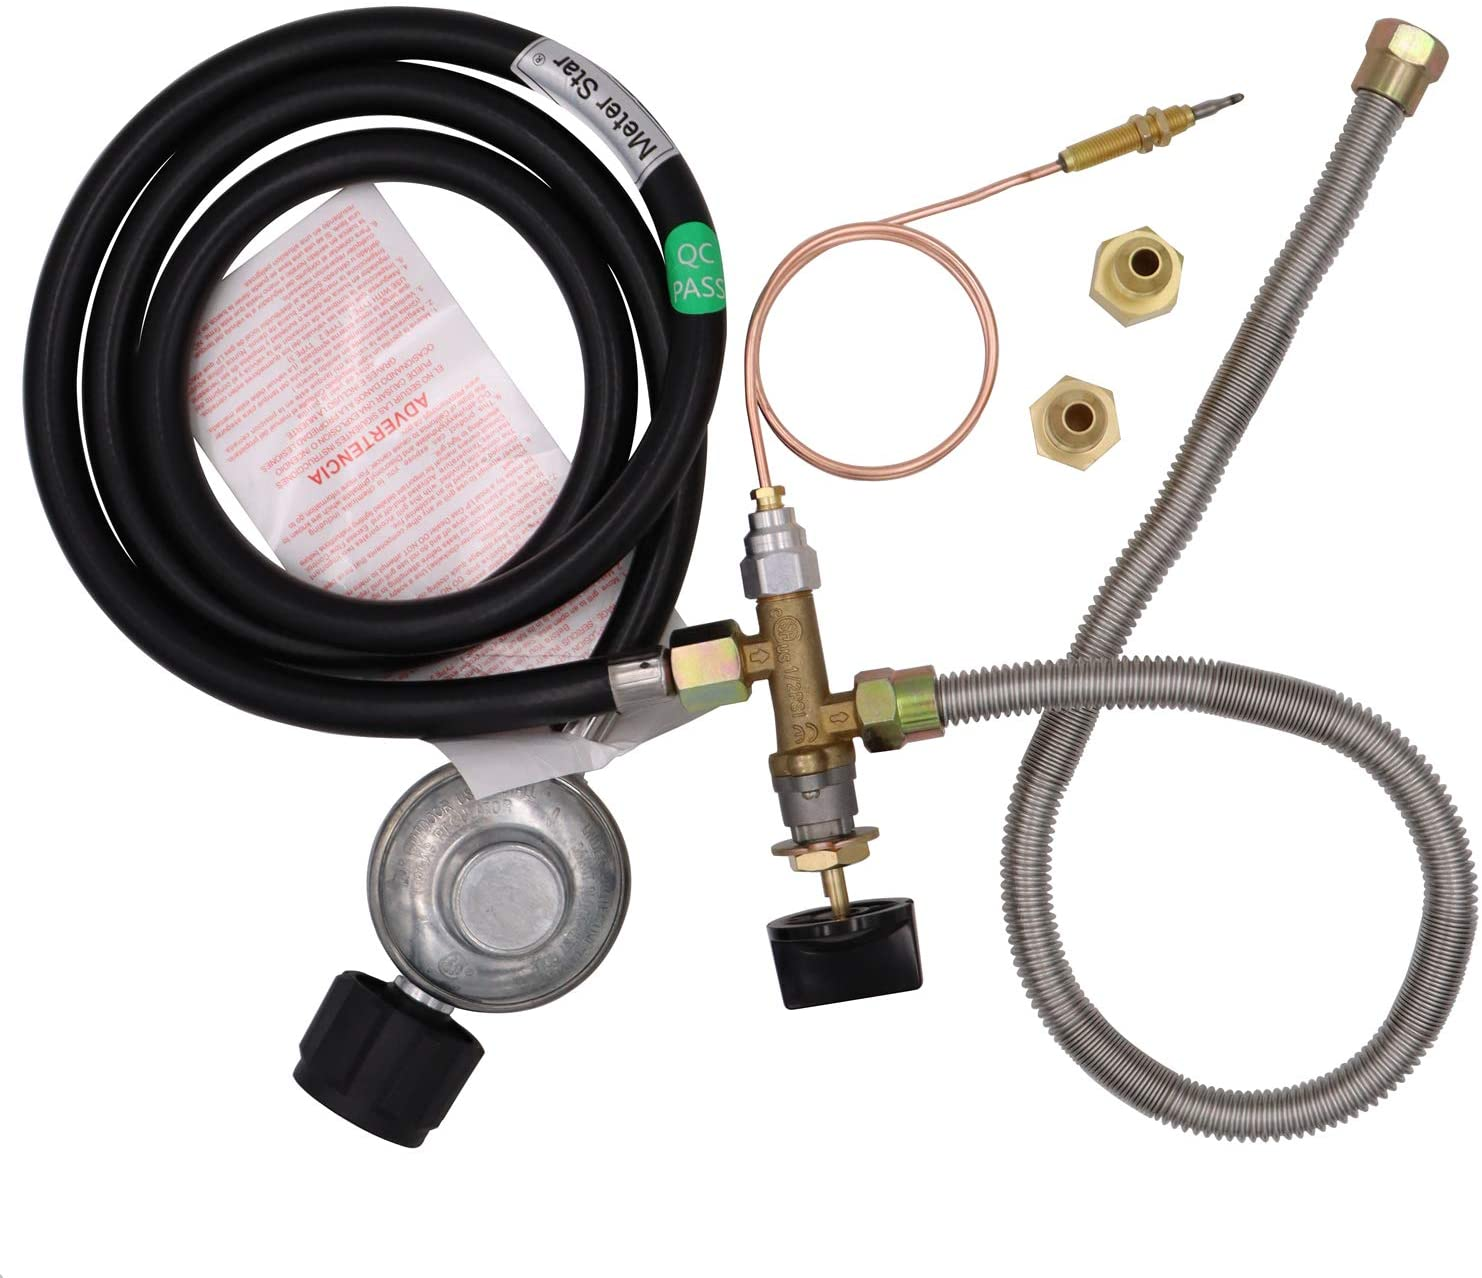 Meter Star CSA Approved Parts Propane Fire Pit/Fireplace Parts Gas Control Valve System Regulator Valve with Hose